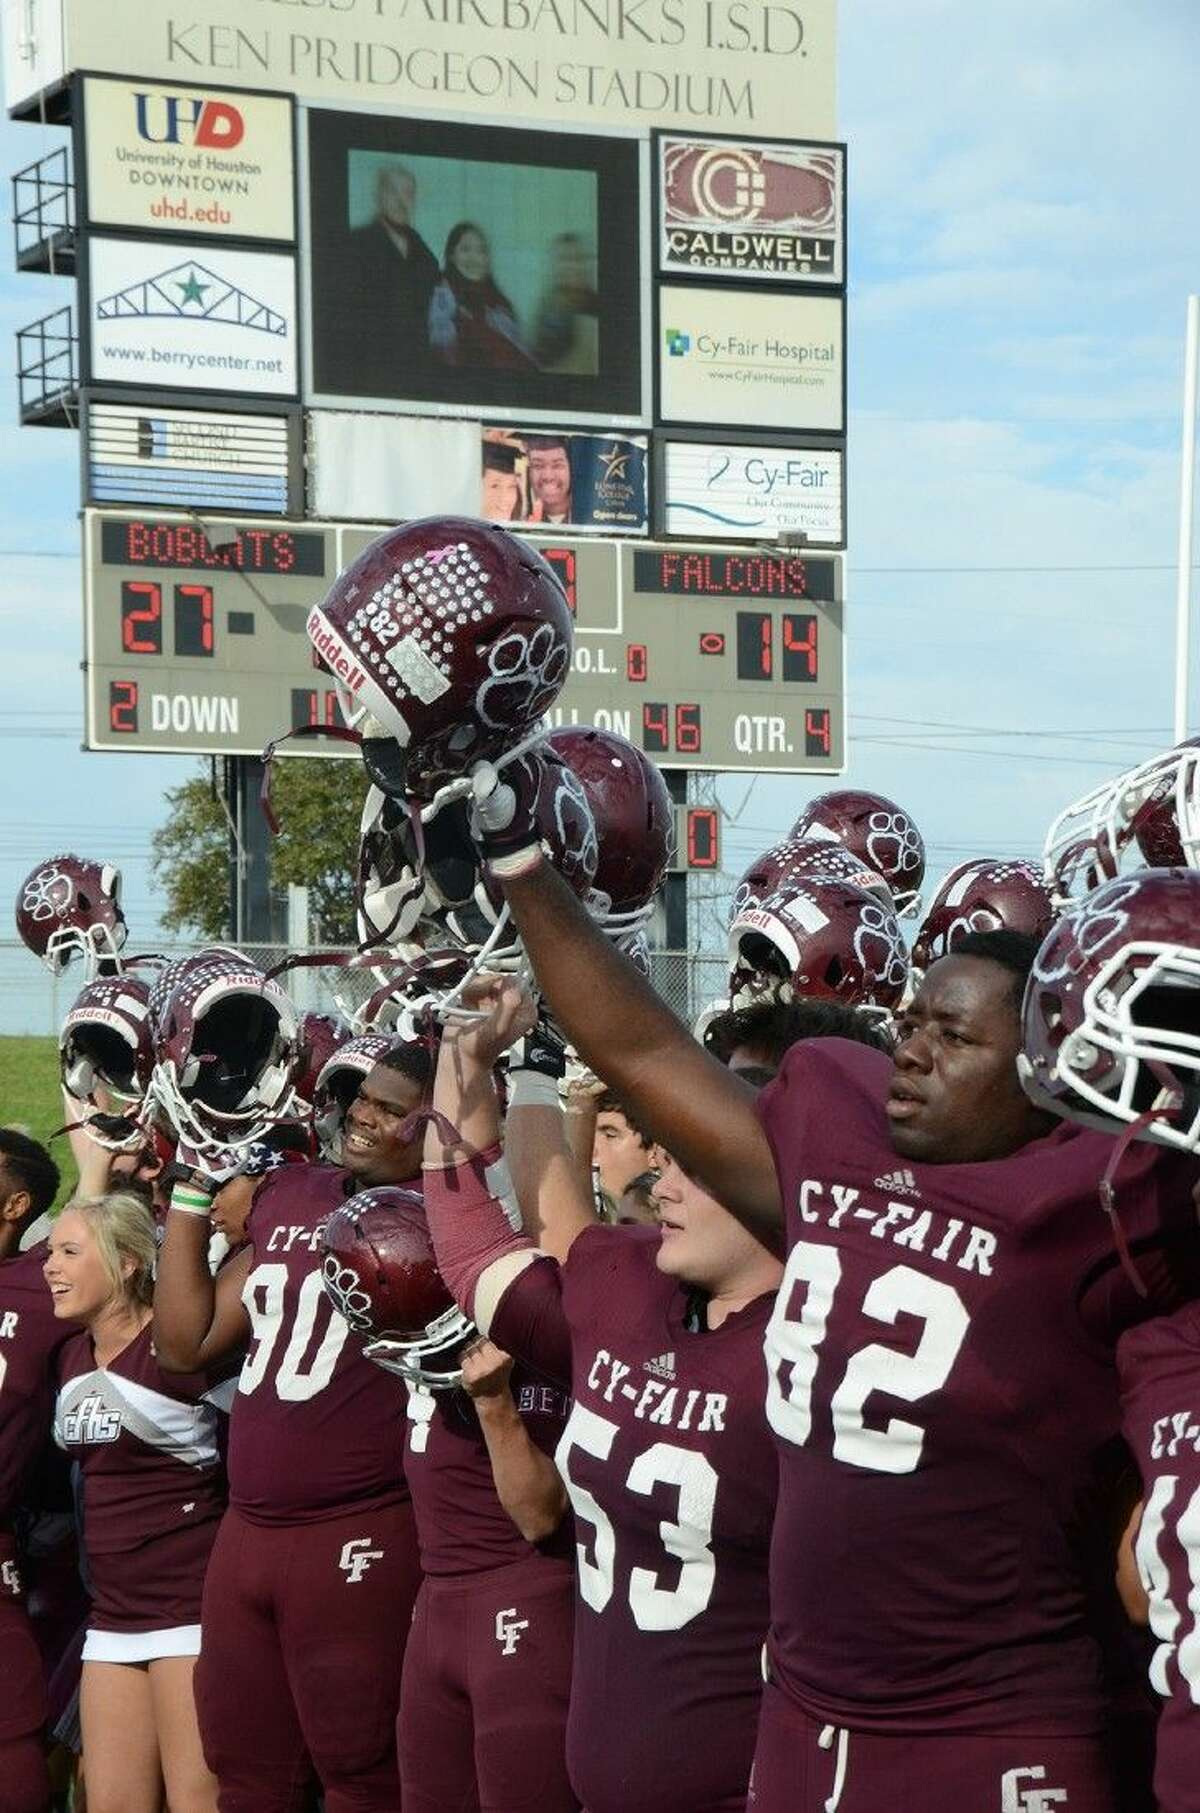 Cy-Fair High School football players victoriously sing the school song after claiming a Region III-6A Division 1 playoff seed with a 27-14 win over Jersey Village High School on Saturday at Pridgeon Stadium.